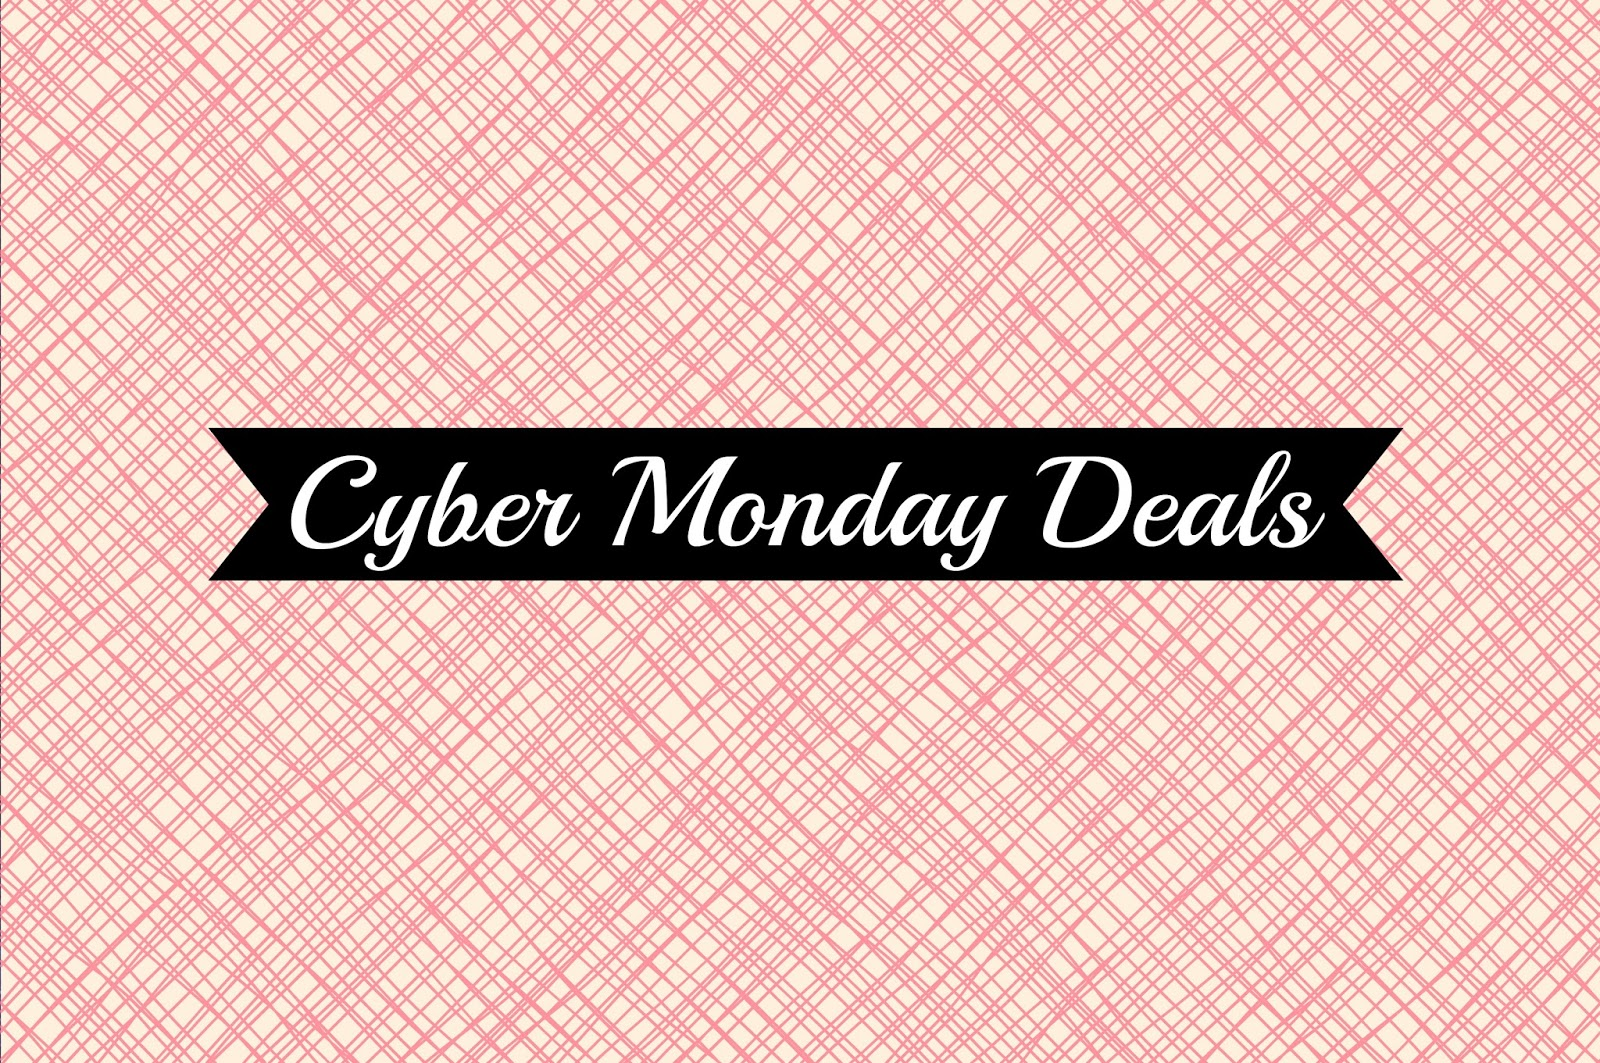 cyber monday deals raspberrykiss. Black Bedroom Furniture Sets. Home Design Ideas